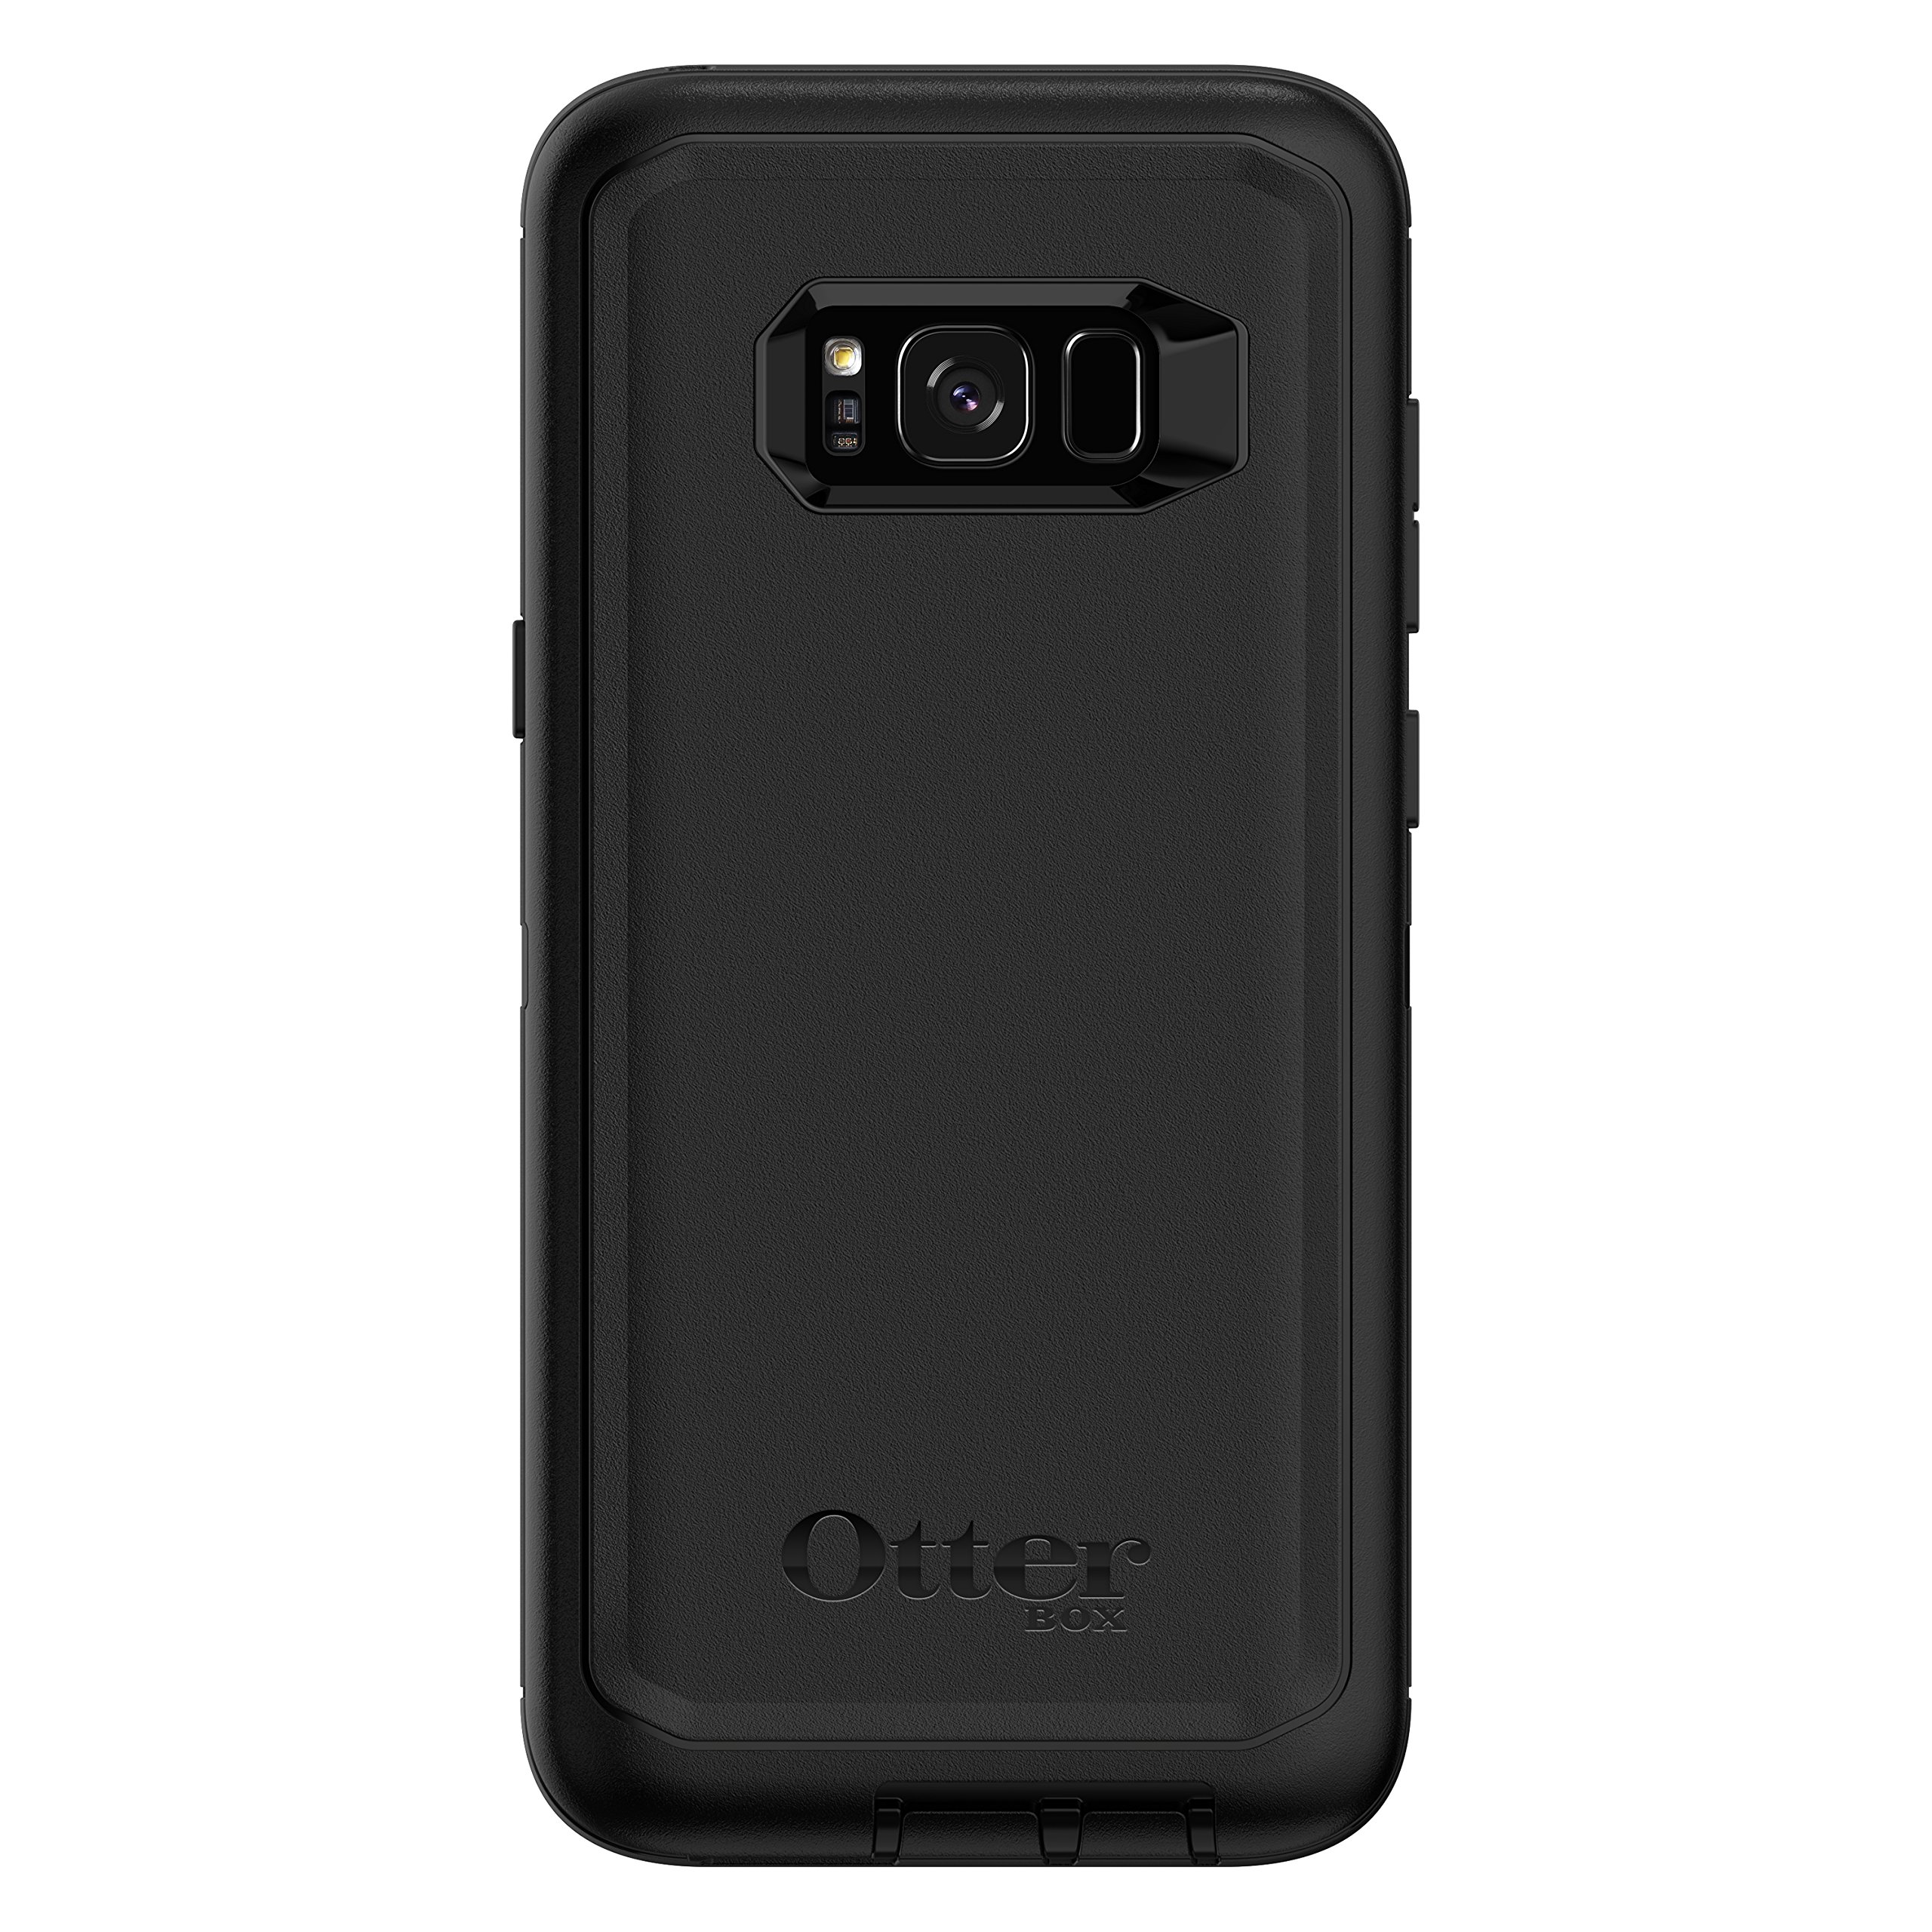 OtterBox Defender Series SCREENLESS Edition for Samsung Galaxy S8+ - Frustration Free Packaging - Black by OtterBox (Image #1)